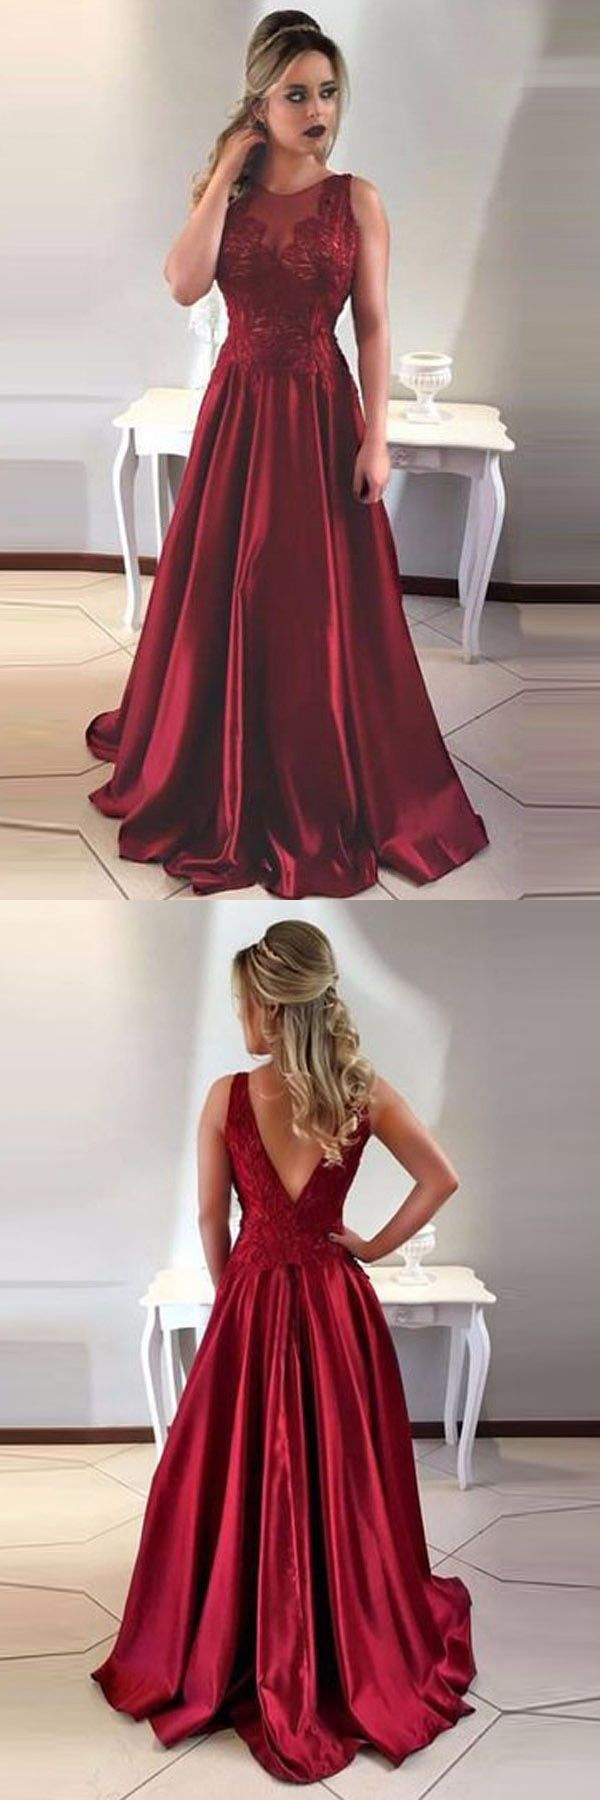 Long lace prom dresses long prom dresses longpromdresses